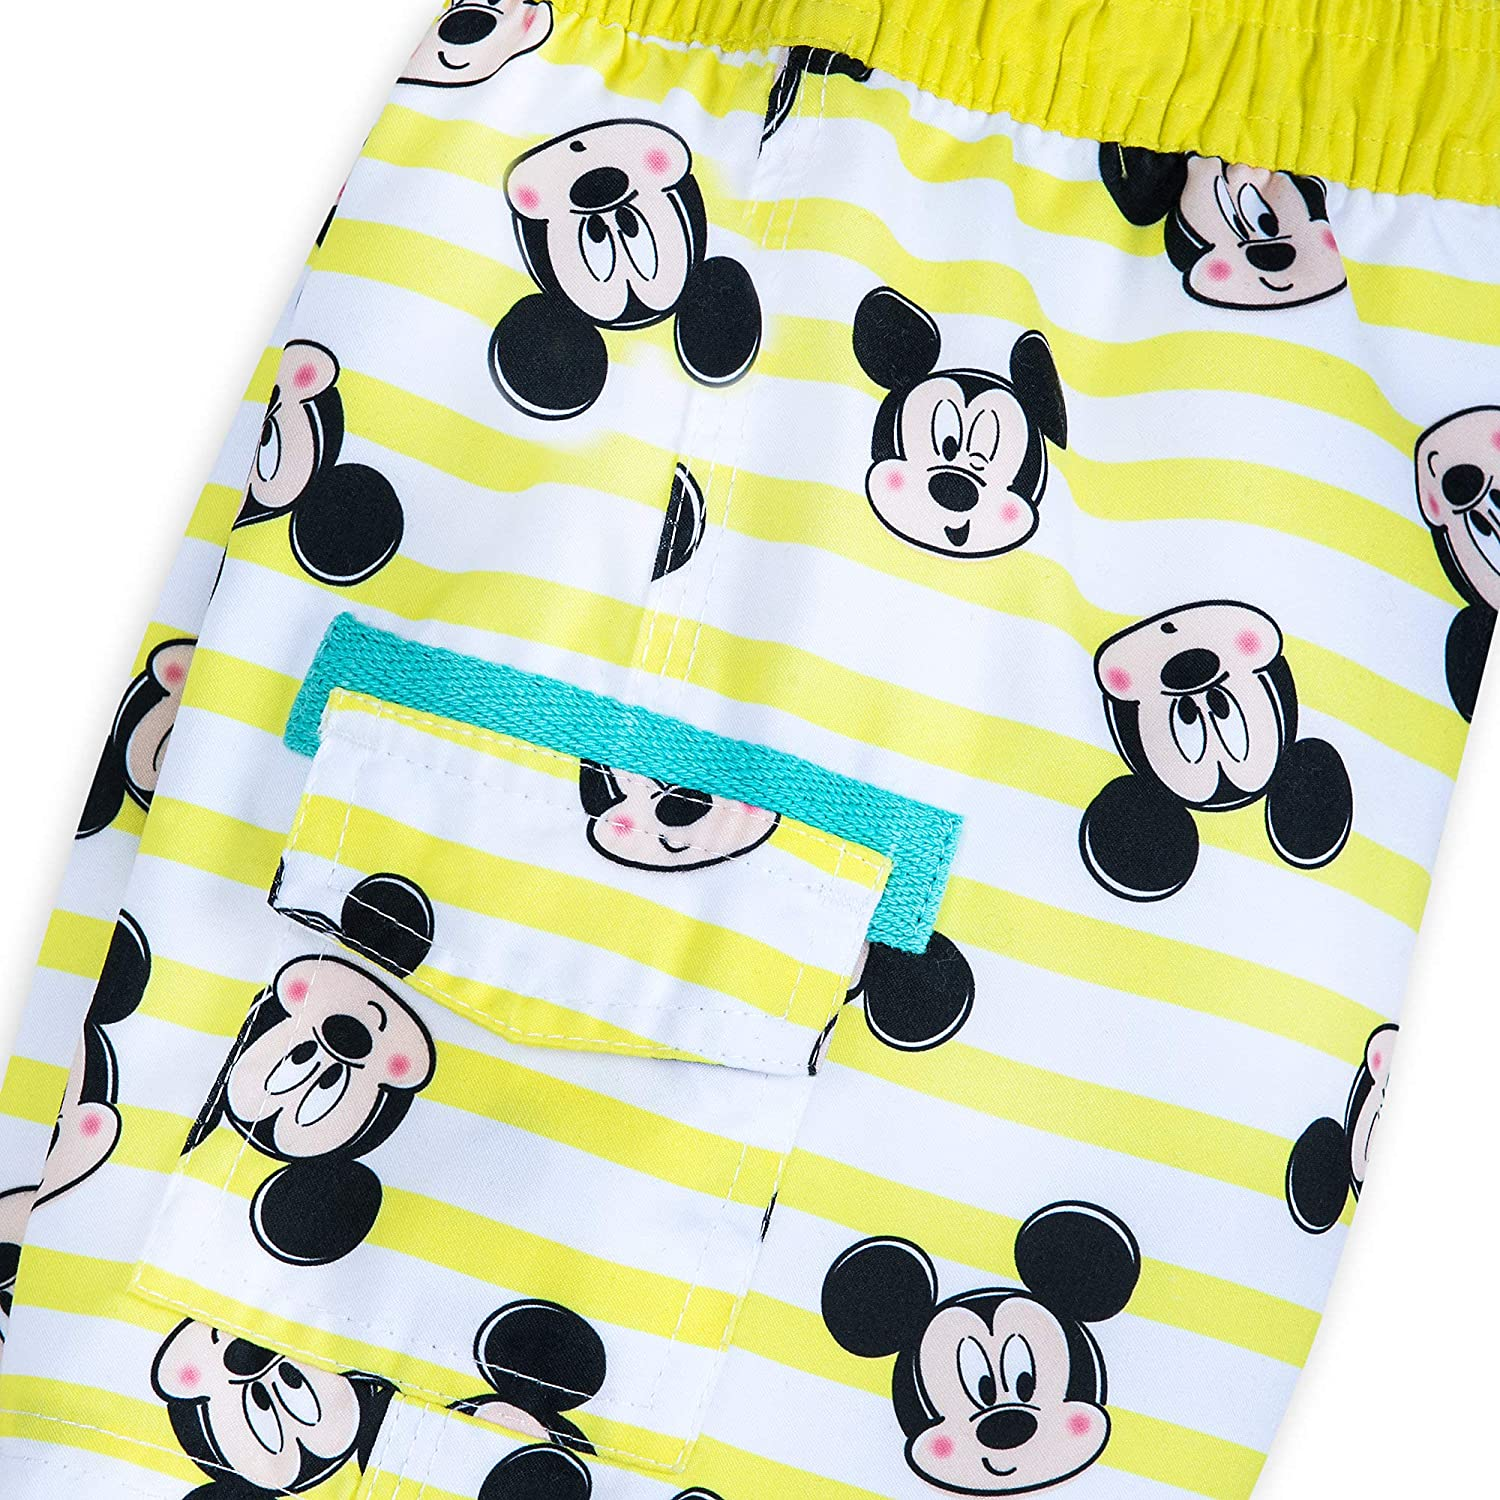 Disney Mickey Mouse Striped Swim Trunks for Baby Size 9-12 MO Multi